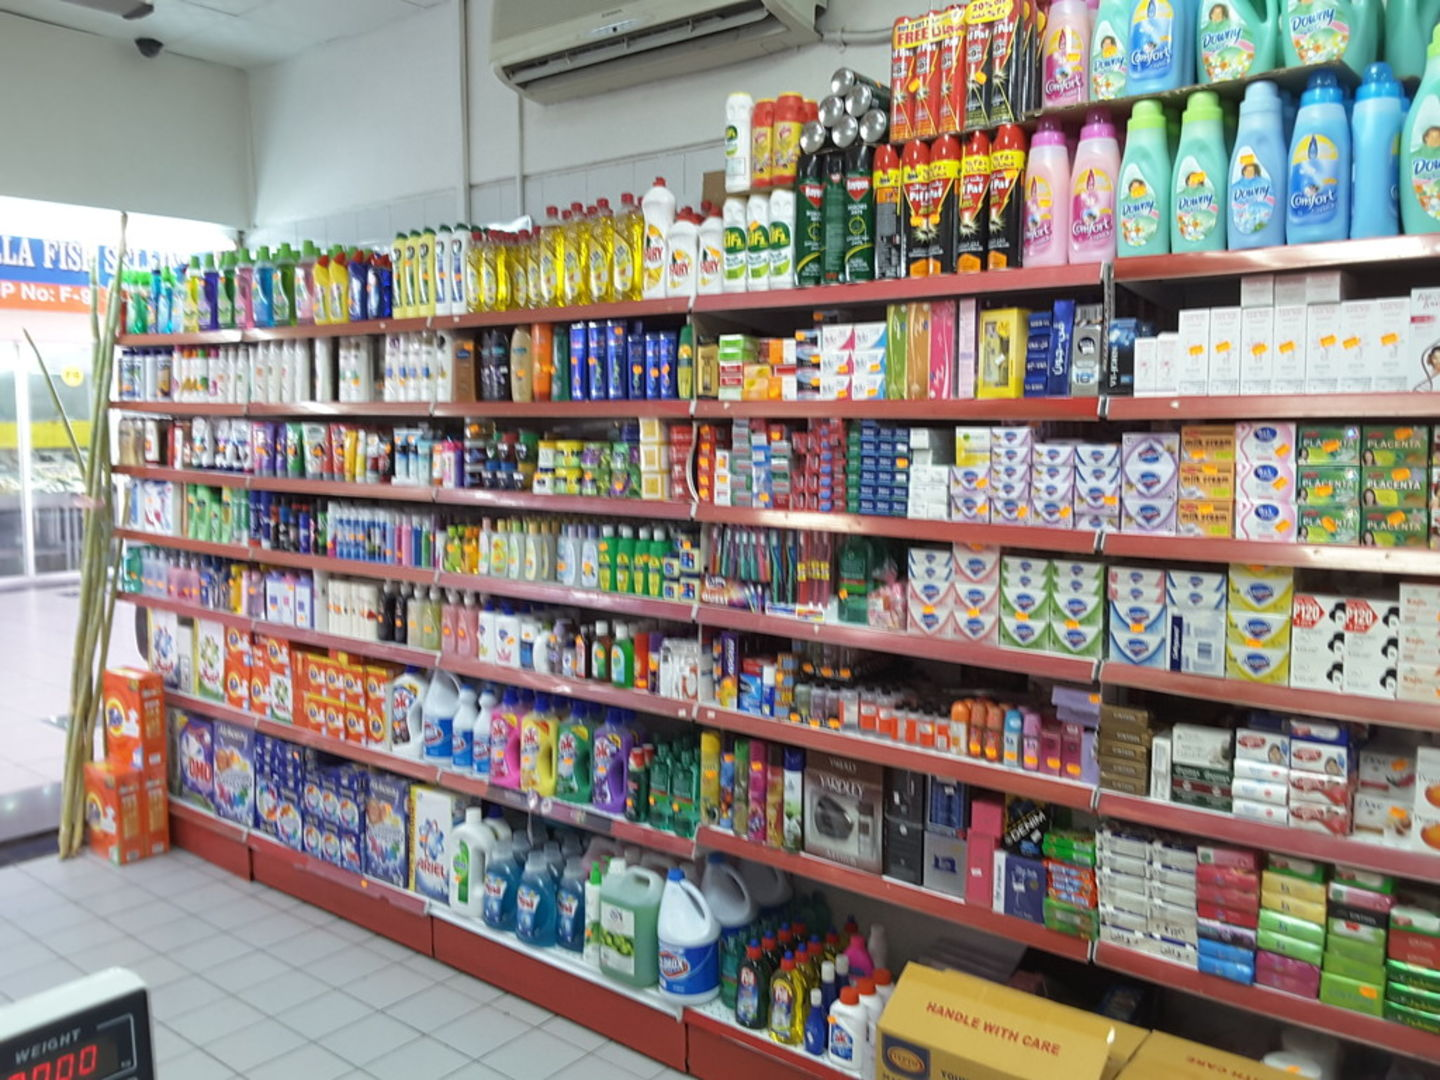 HiDubai-business-umai-ban-supermarket-shopping-supermarkets-hypermarkets-grocery-stores-al-karama-dubai